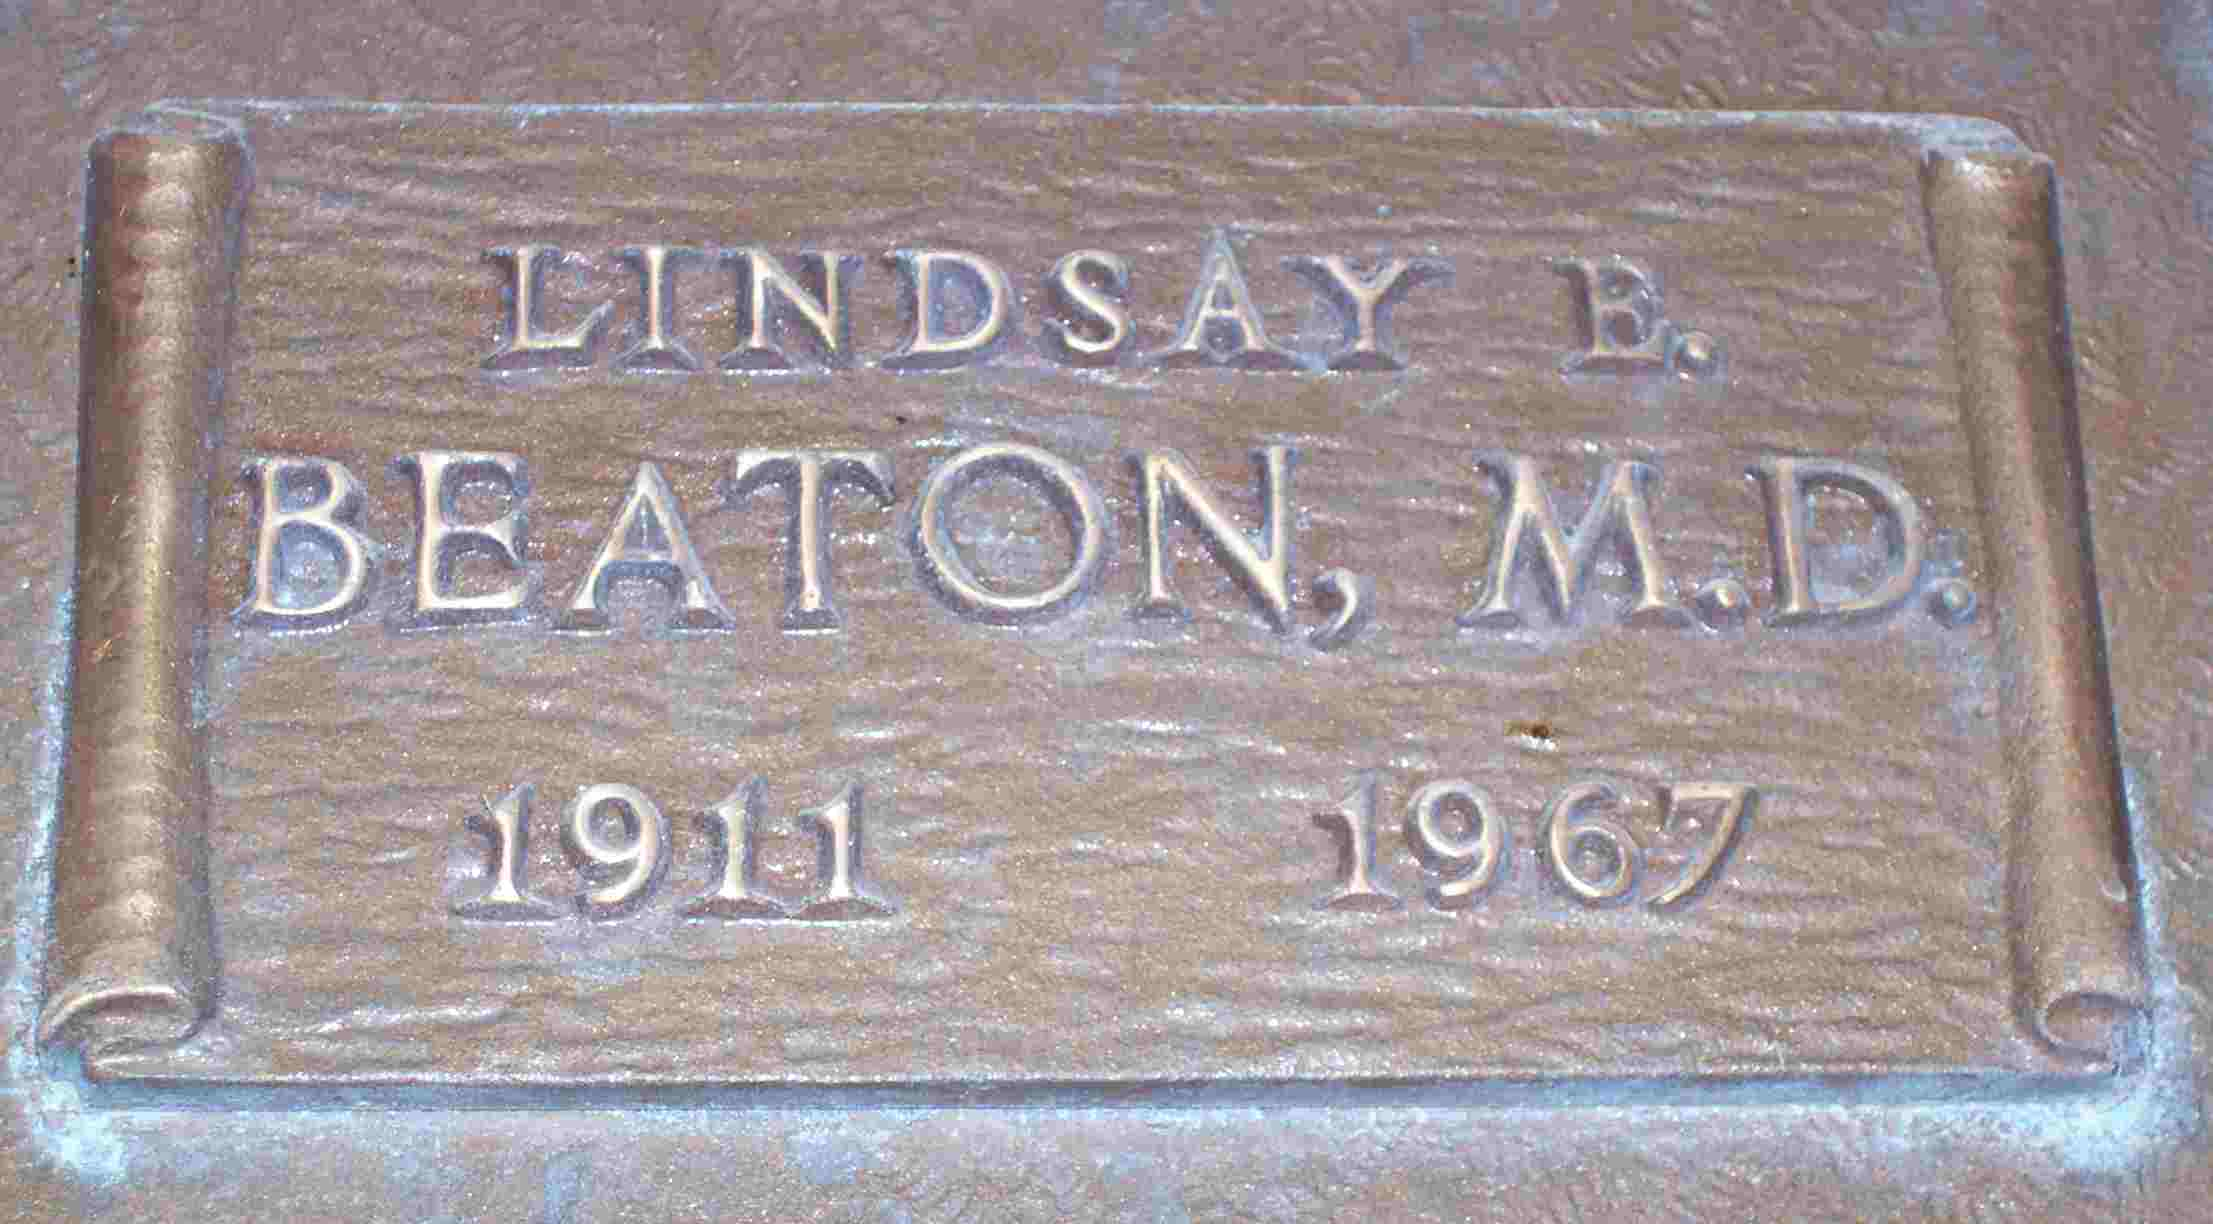 Barrows family headstone of lindsay eugene beaton in south lawn cemetery tucson pima county arizona aiddatafo Image collections